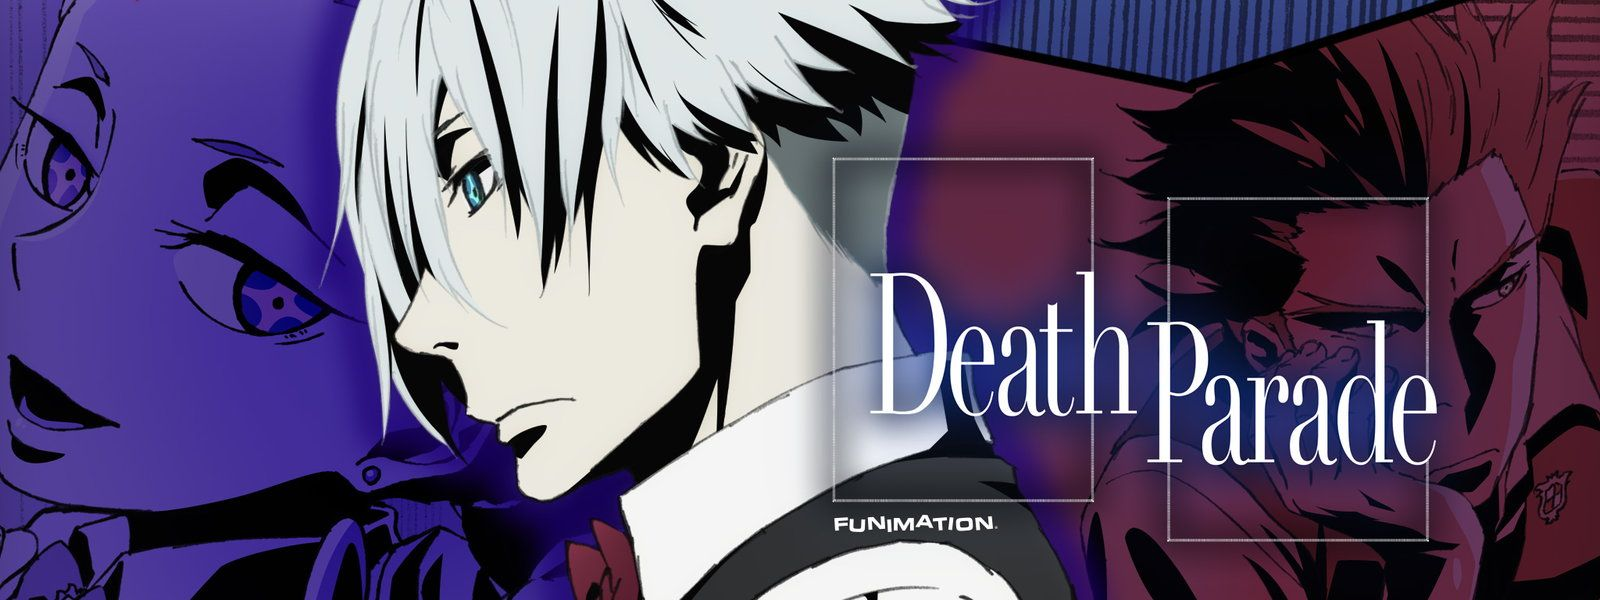 Death parade justdubs online dubbed anime watch anime english dubbed